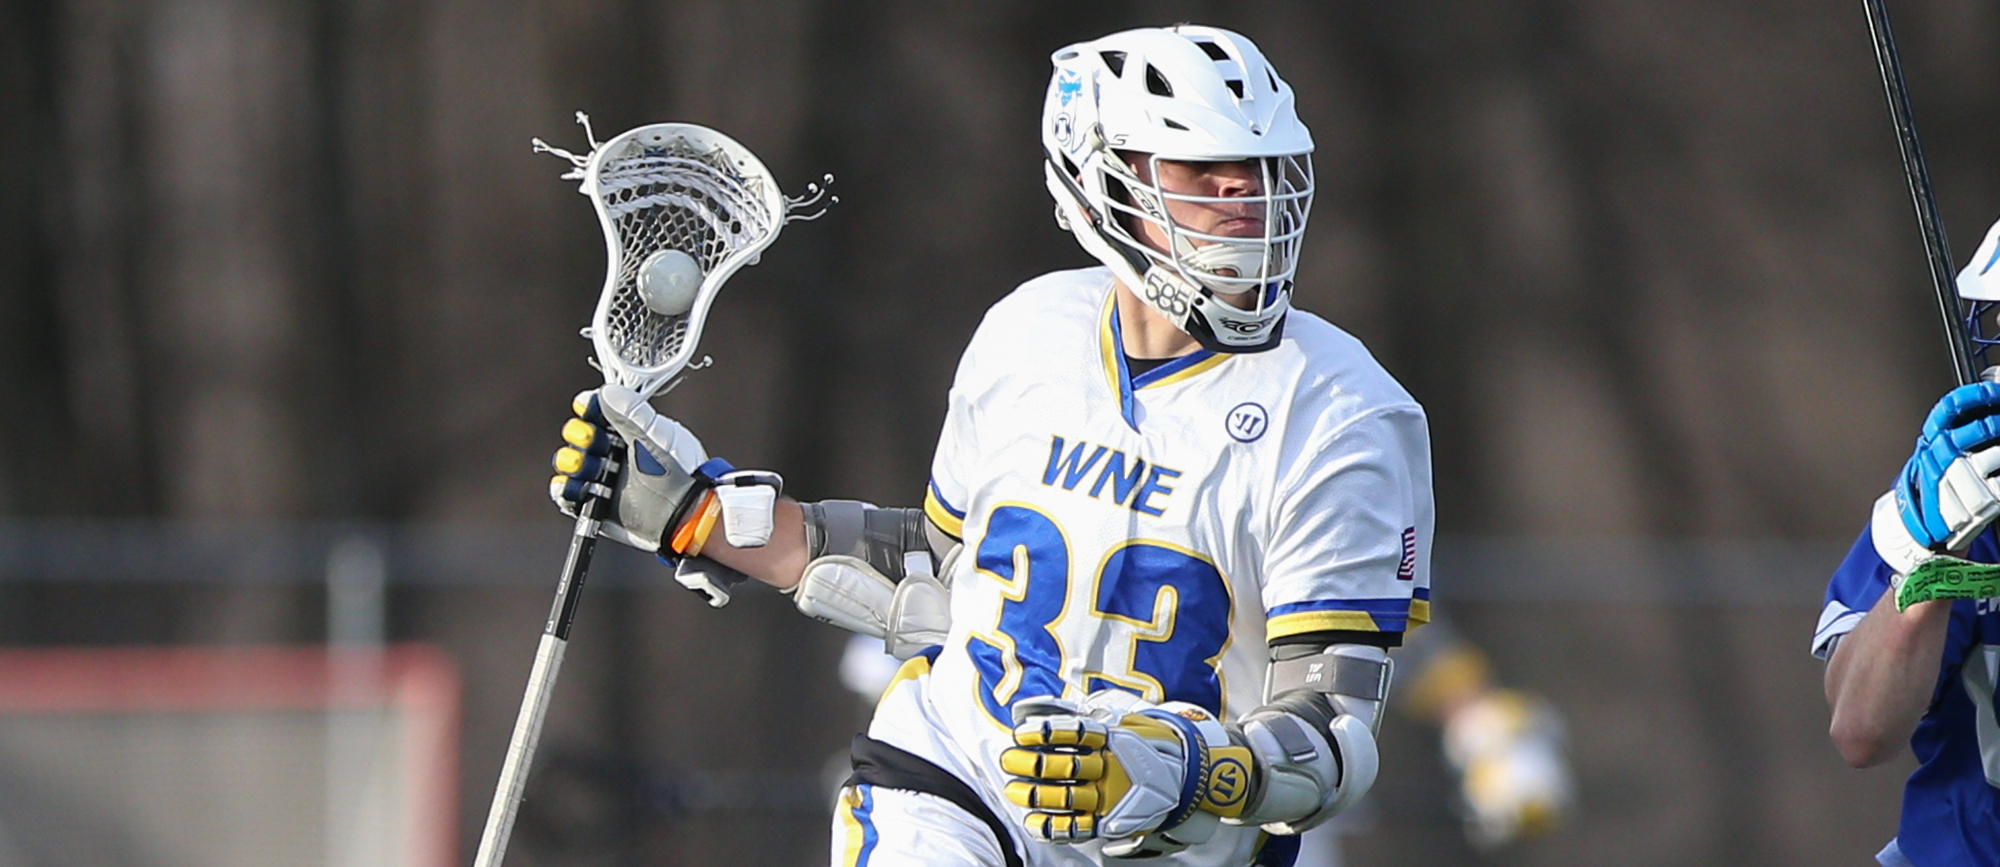 Tim Breau recorded three points in Western New England's 19-7 loss to No. 8 Williams on Wednesday. (Photo by Chris Marion)